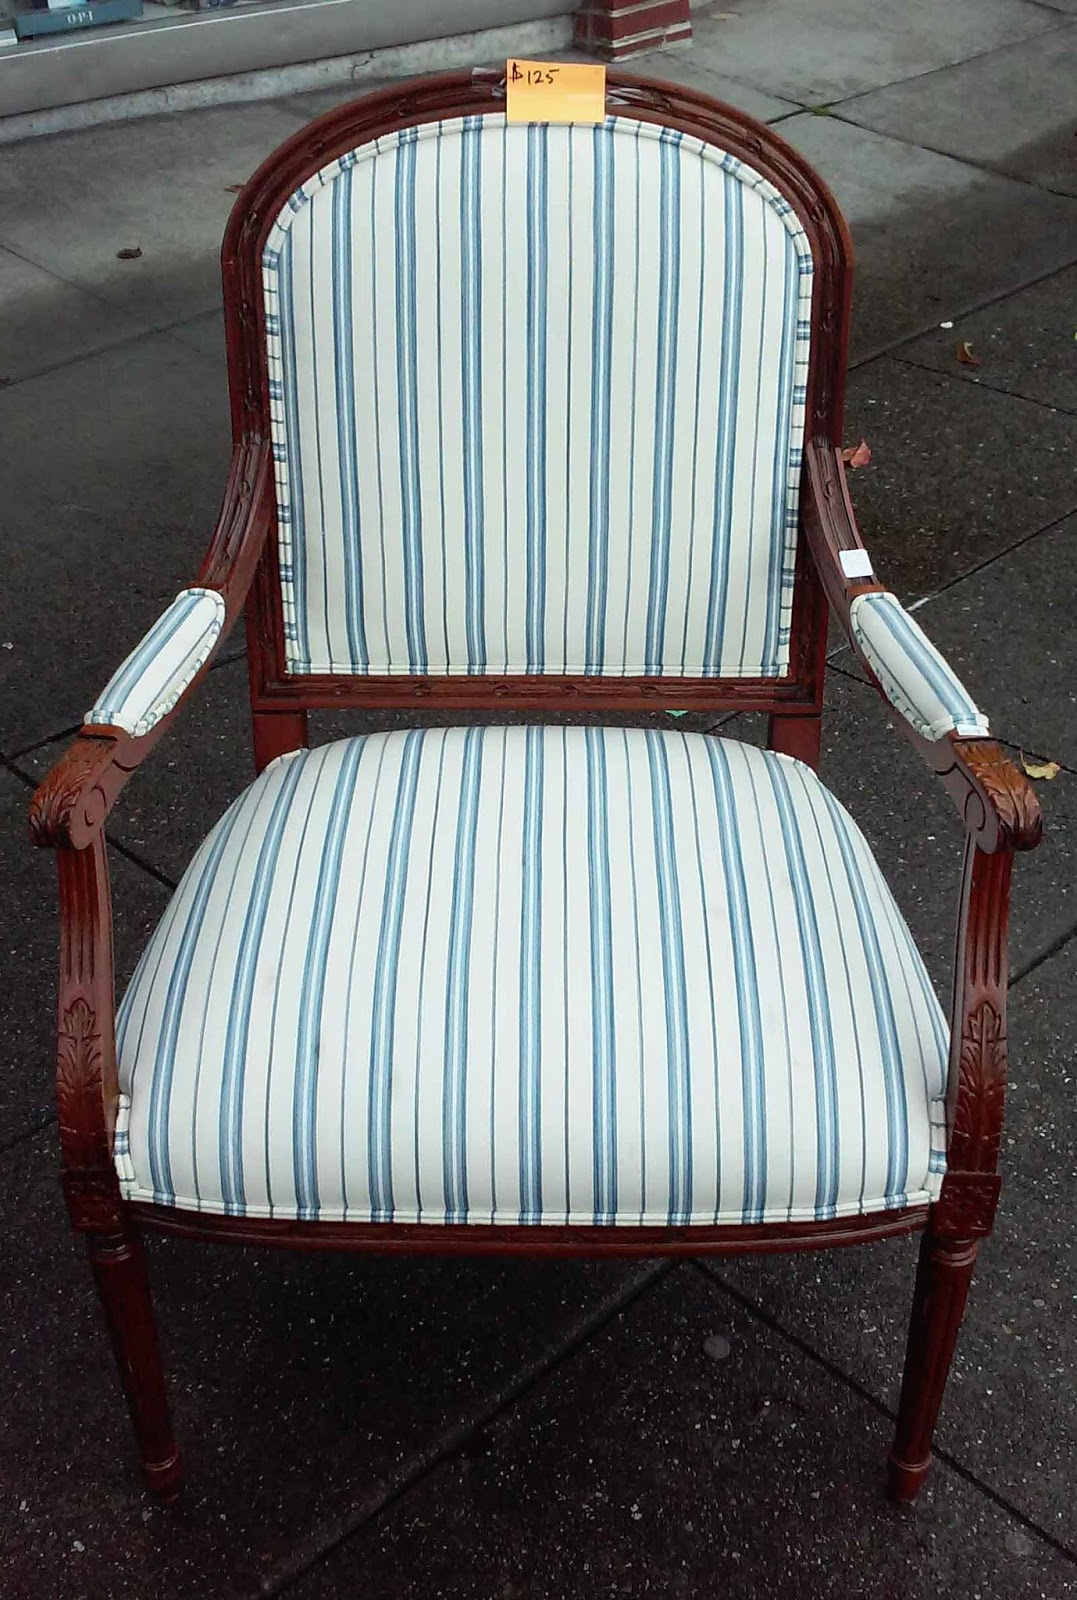 Blue And White Striped Chair Uhuru Furniture And Collectibles Sold Blue And White